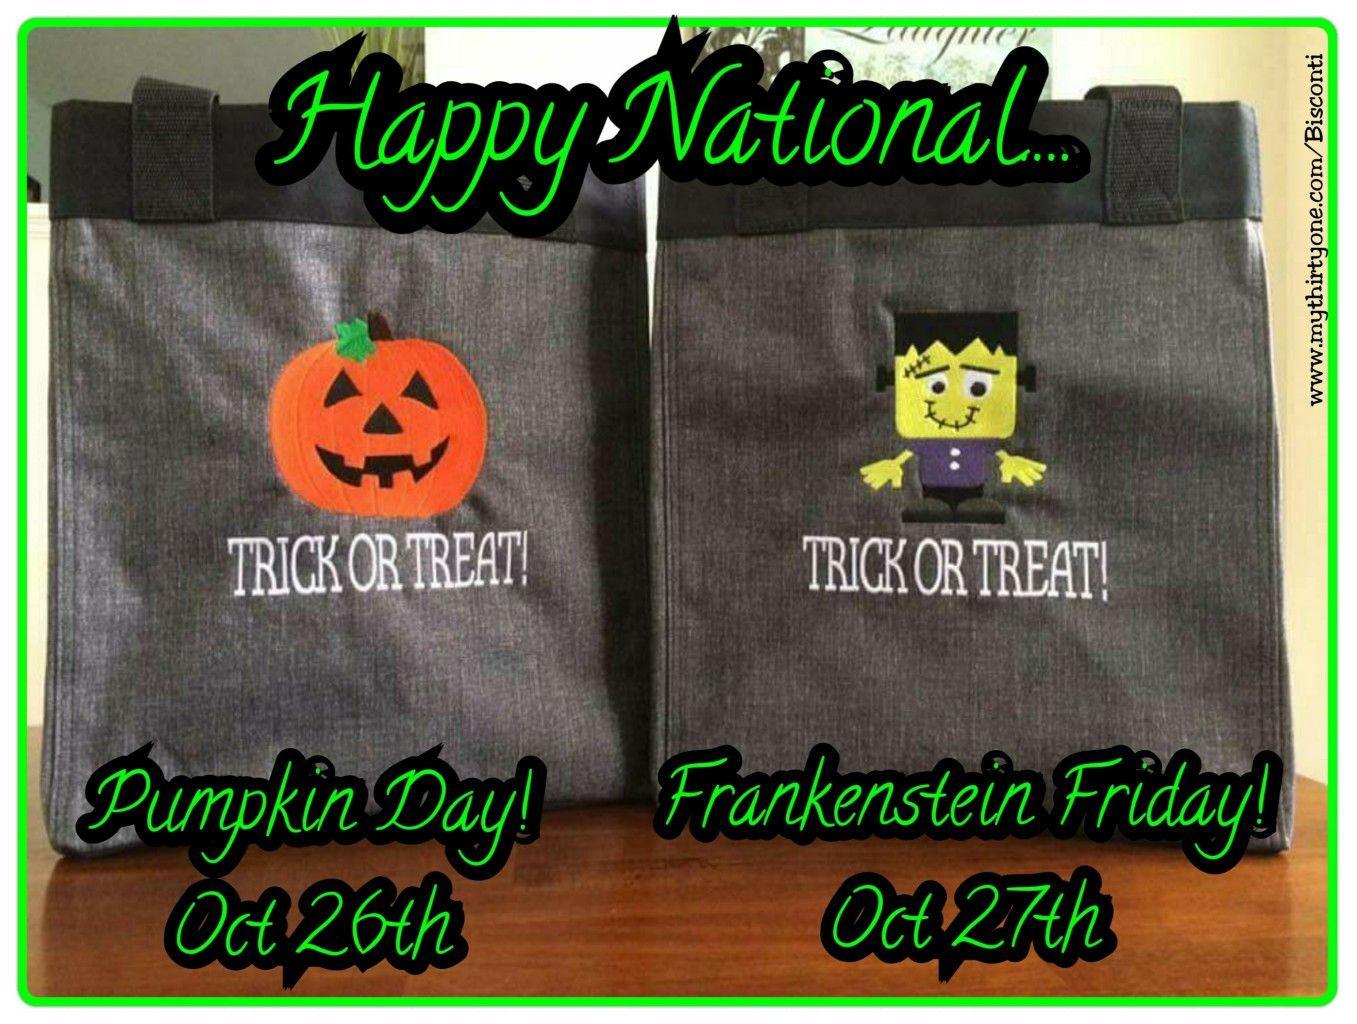 Happy National Pumpkin Day Happy National Frankenstein Friday Thirty One Pumpkin Icon It Thirty One Frankenstein Icon It P Thirty One Thirty One Gifts Day